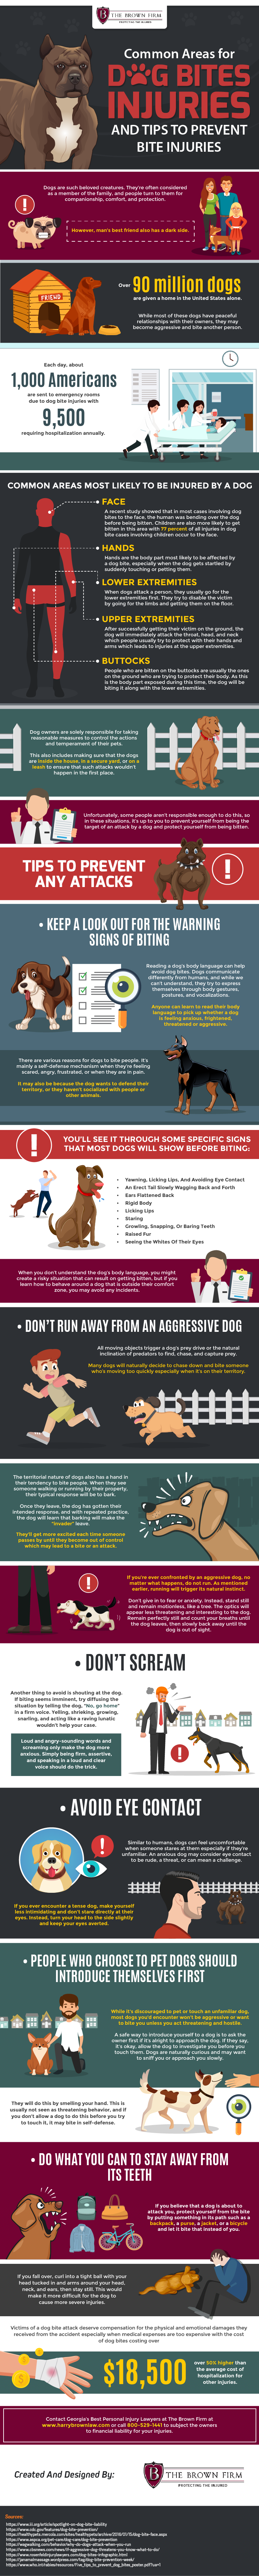 Tips to Prevent a Dog Bite - Infographic